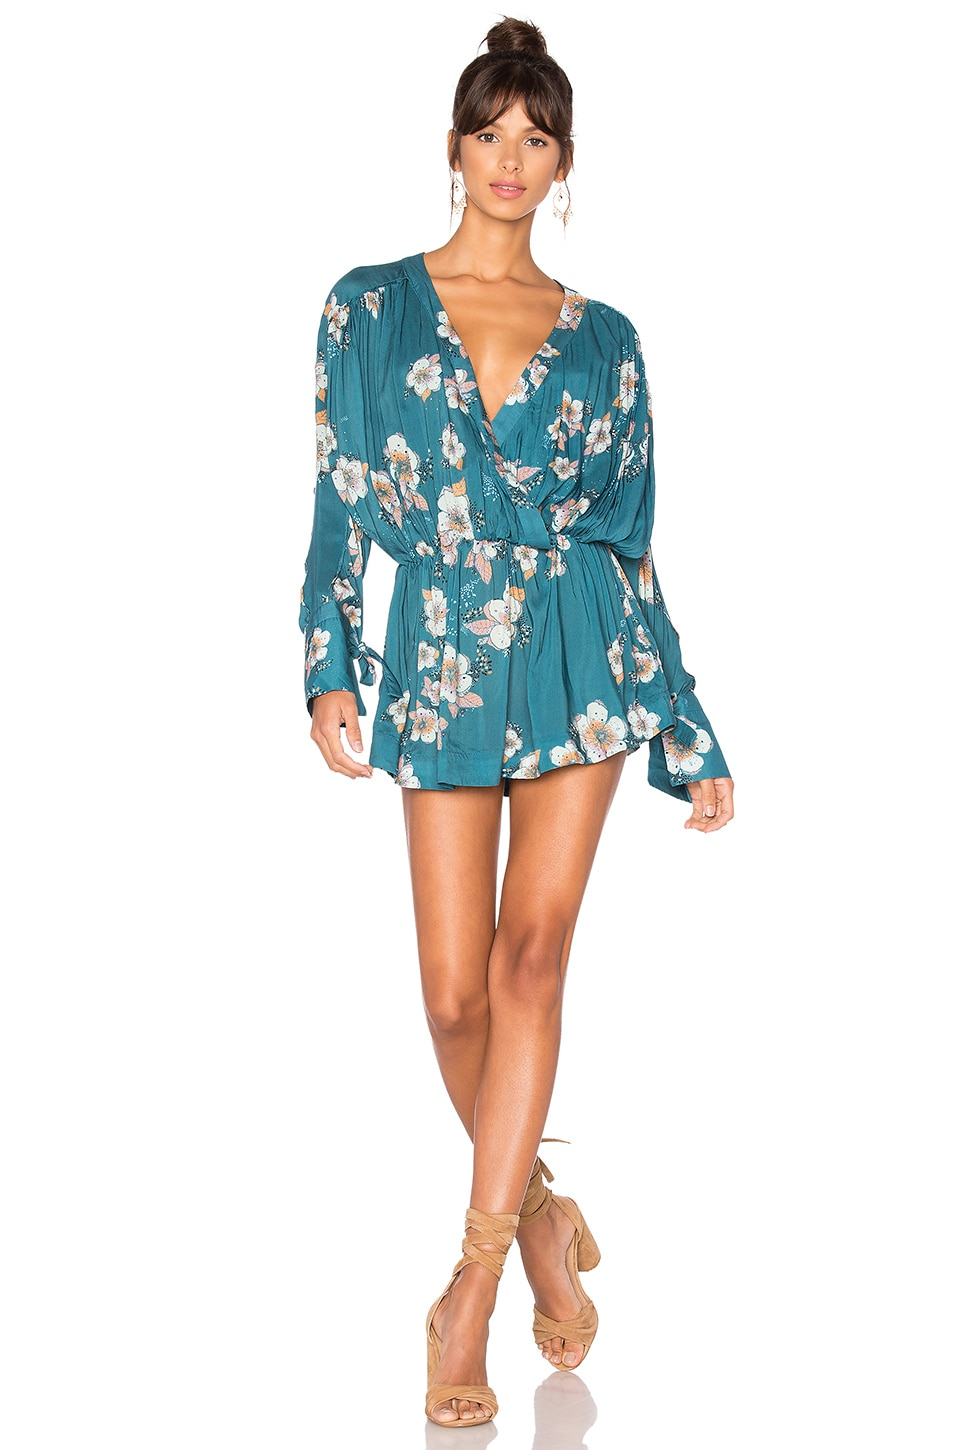 Tuscan Dreams Printed Tunic by Free People